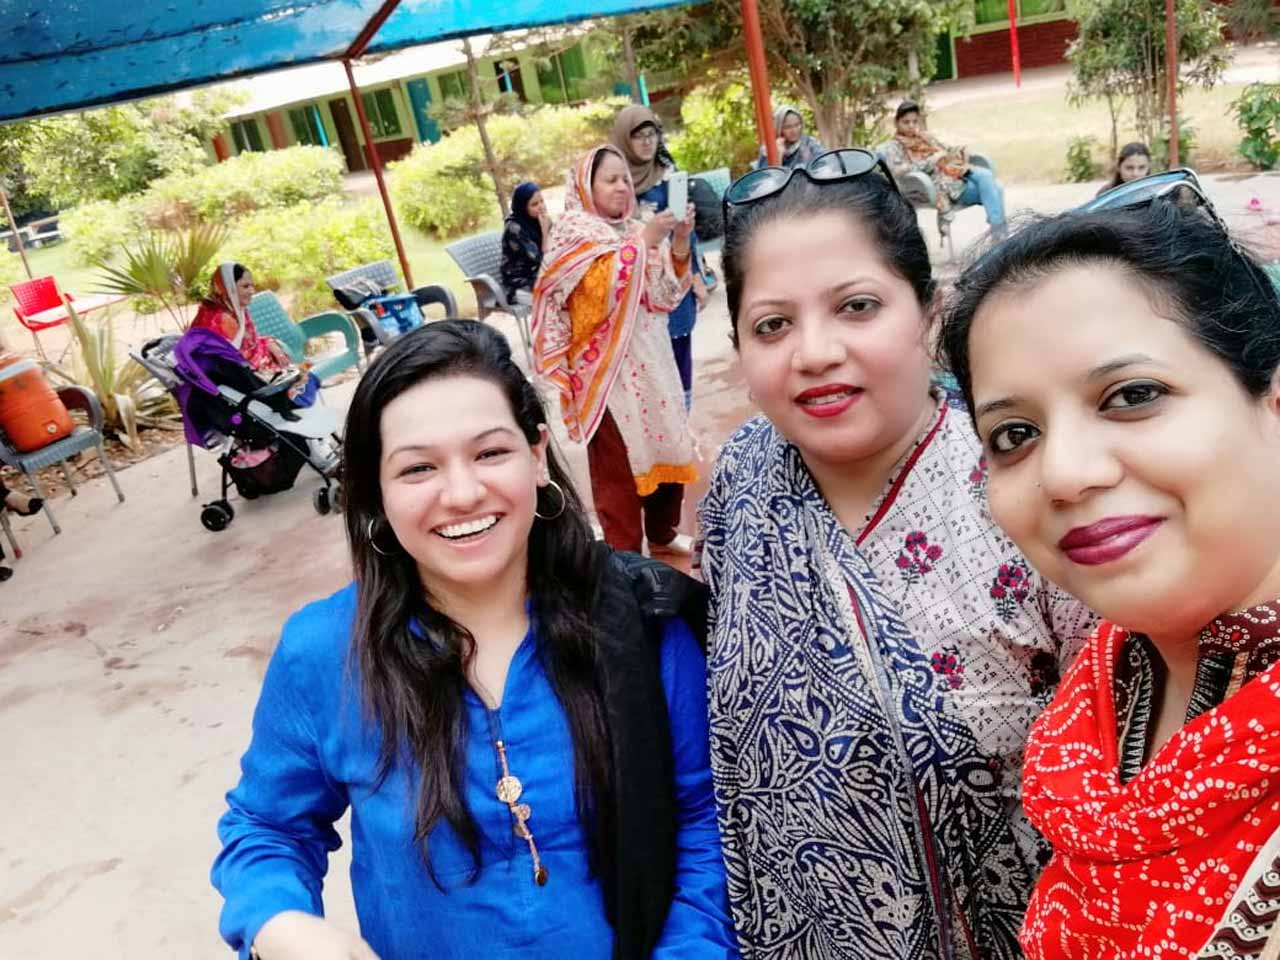 Faryal Khan, Dr. Kiran A. Rehman and Erum Imran enjoying at the swimming pool